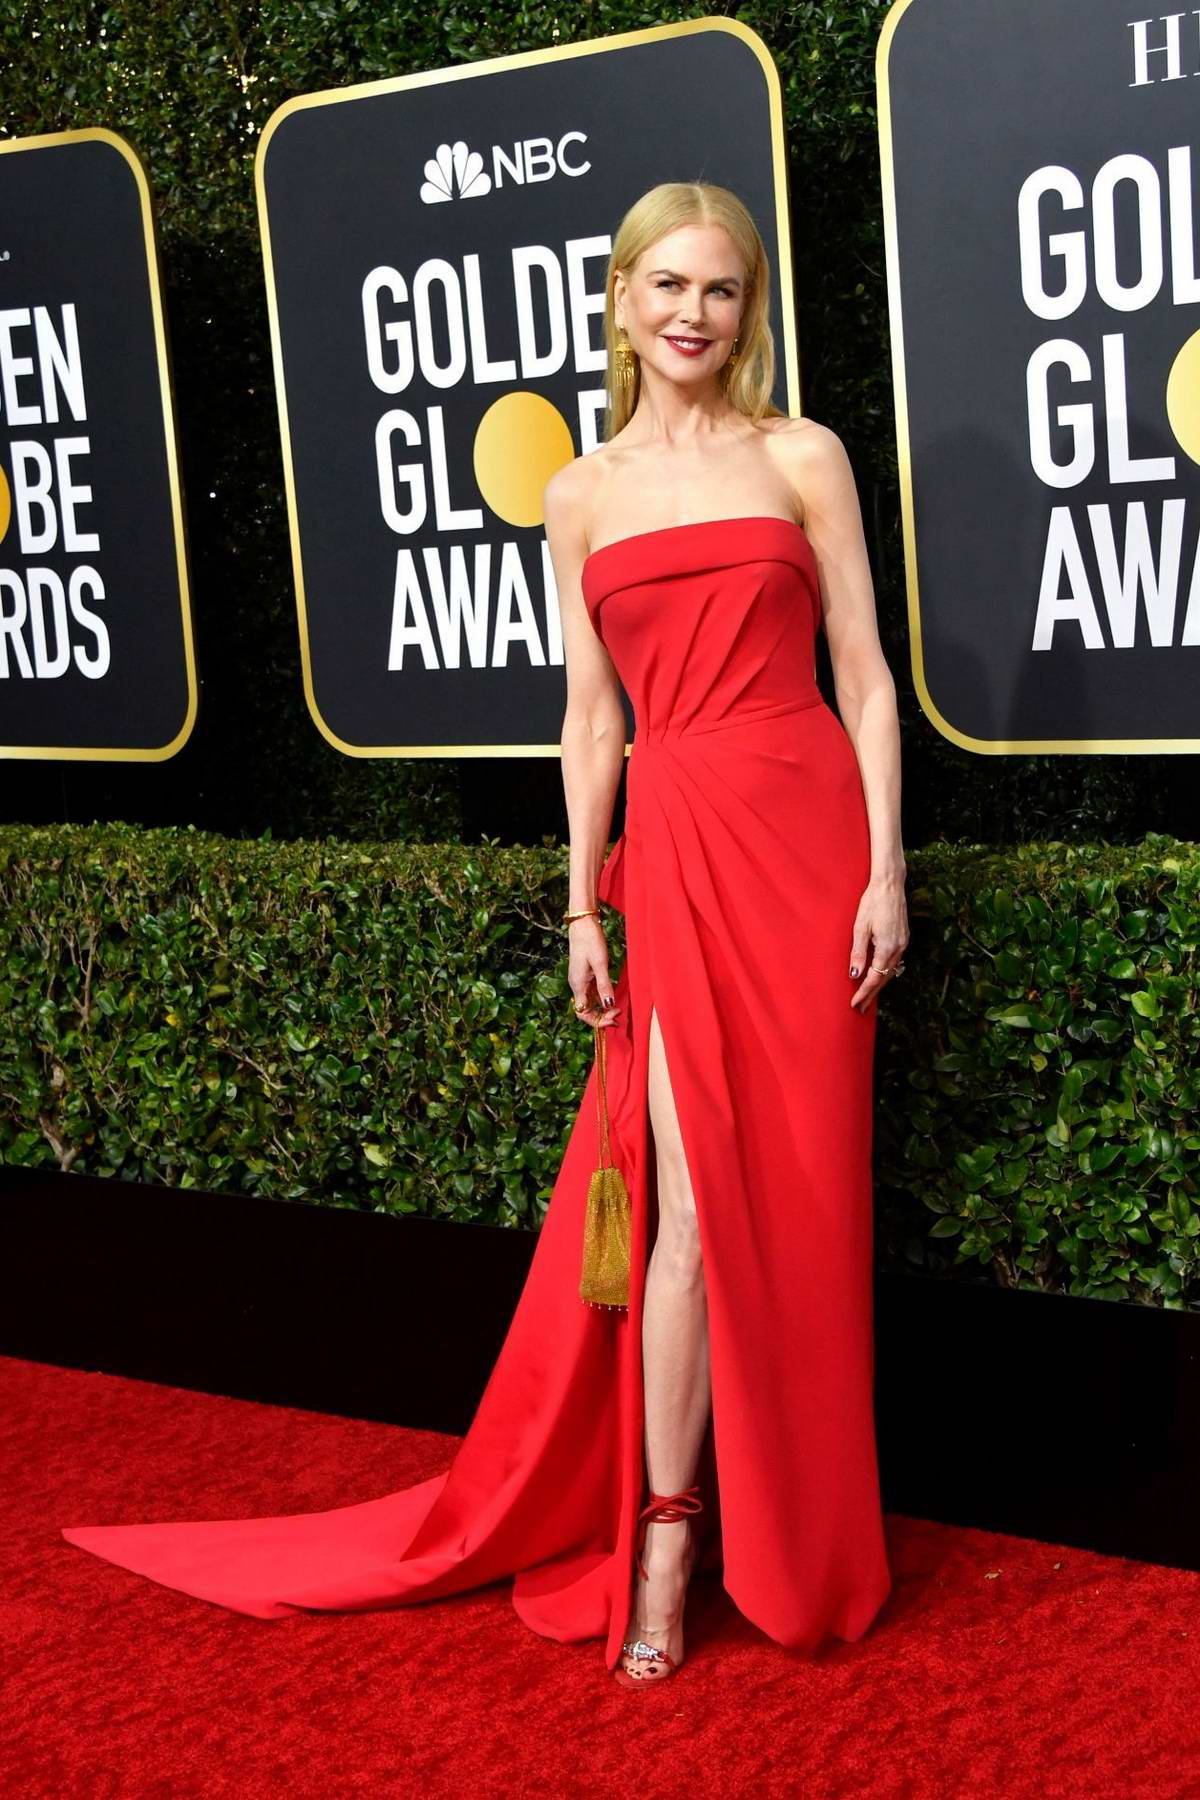 Nicole Kidman attends the 77th Annual Golden Globe Awards at The Beverly Hilton Hotel in Beverly Hills, California